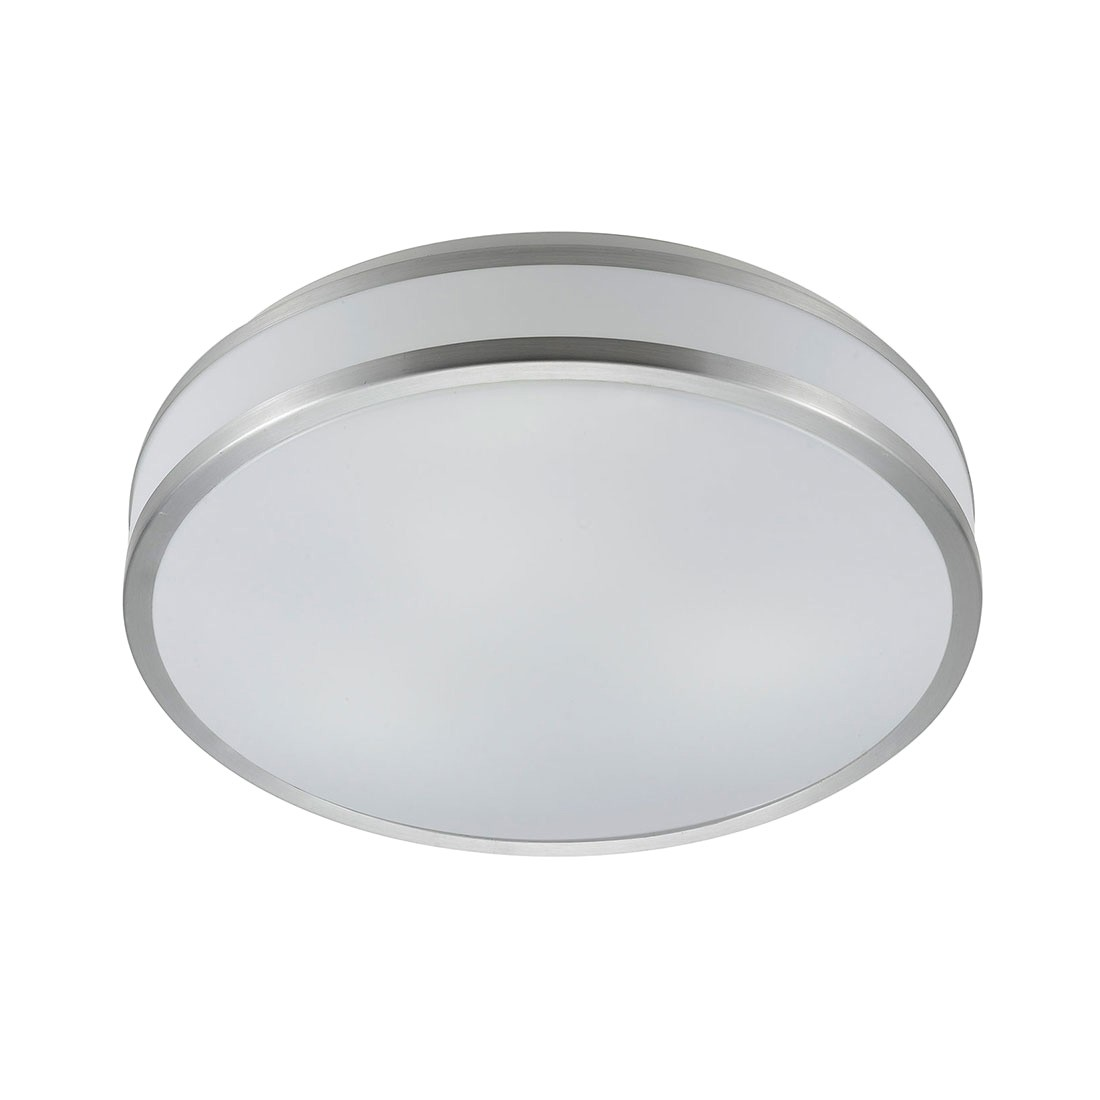 Riley Oyster Ceiling Light, Small